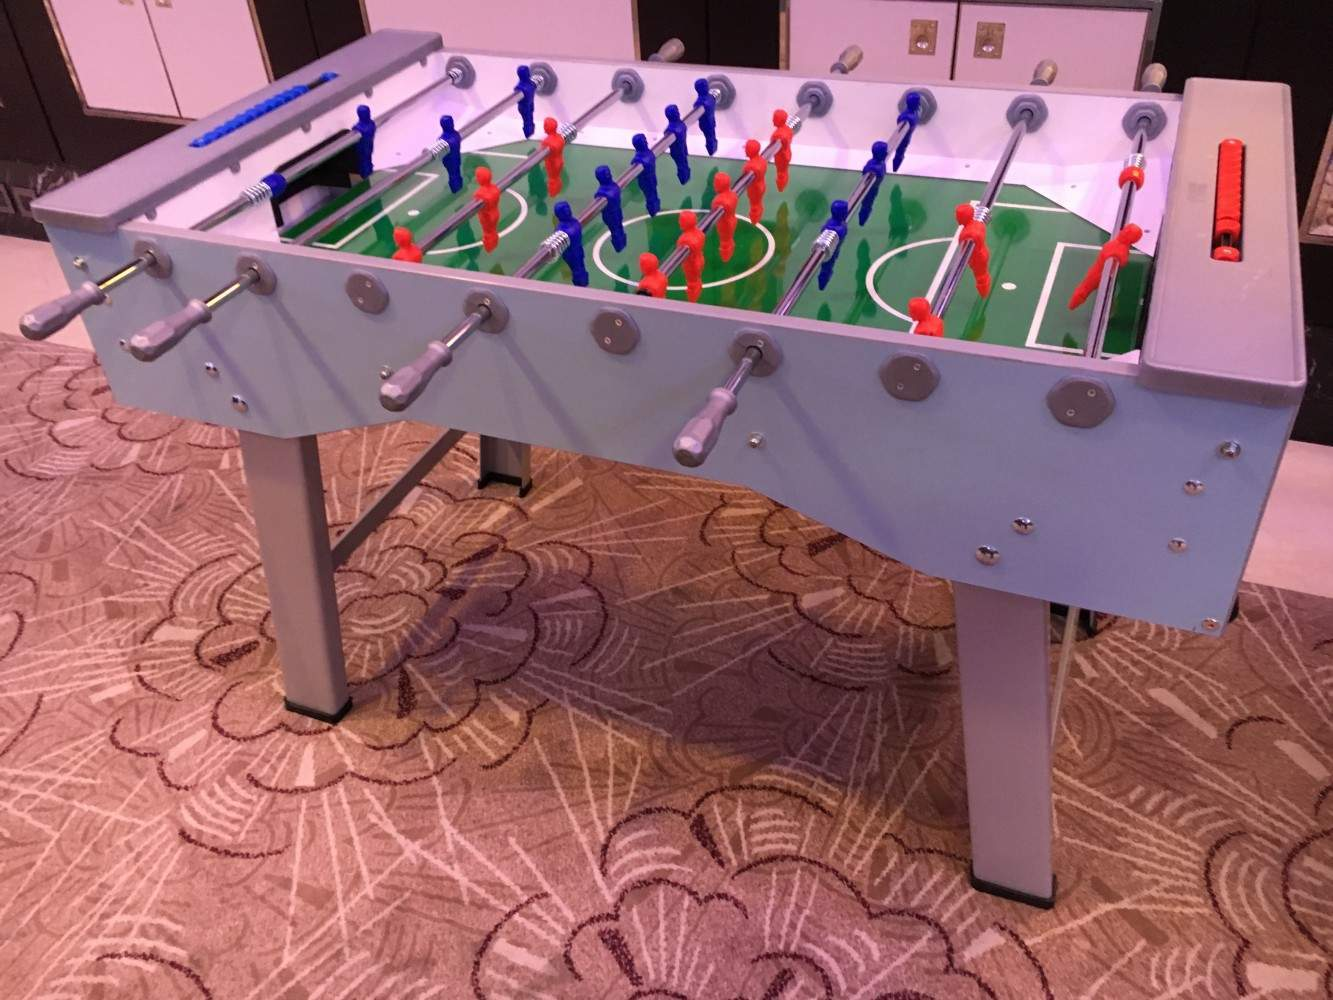 Table Football Game Xtreme Vortex - Conference table football